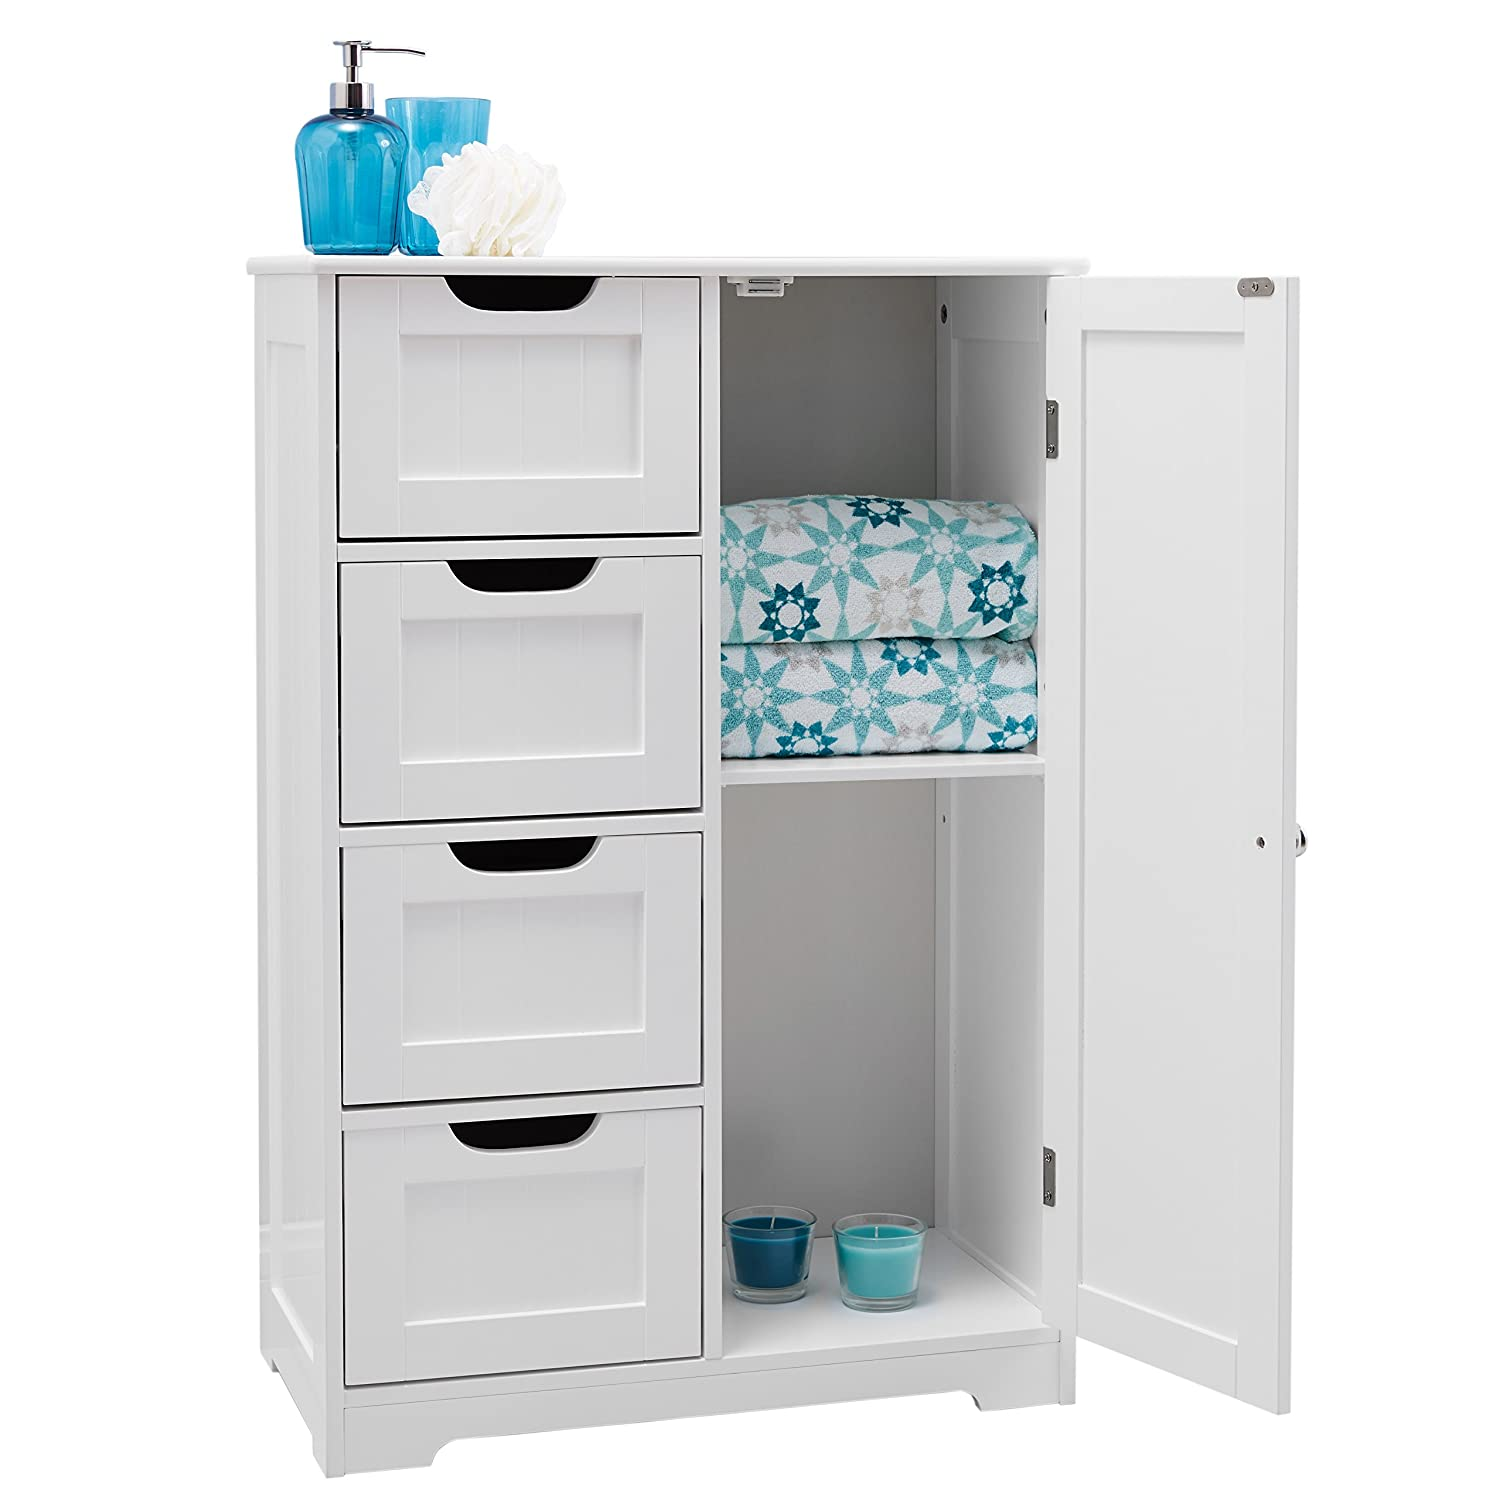 82x55x30cm White wooden bathroom cabinet by with four drawers